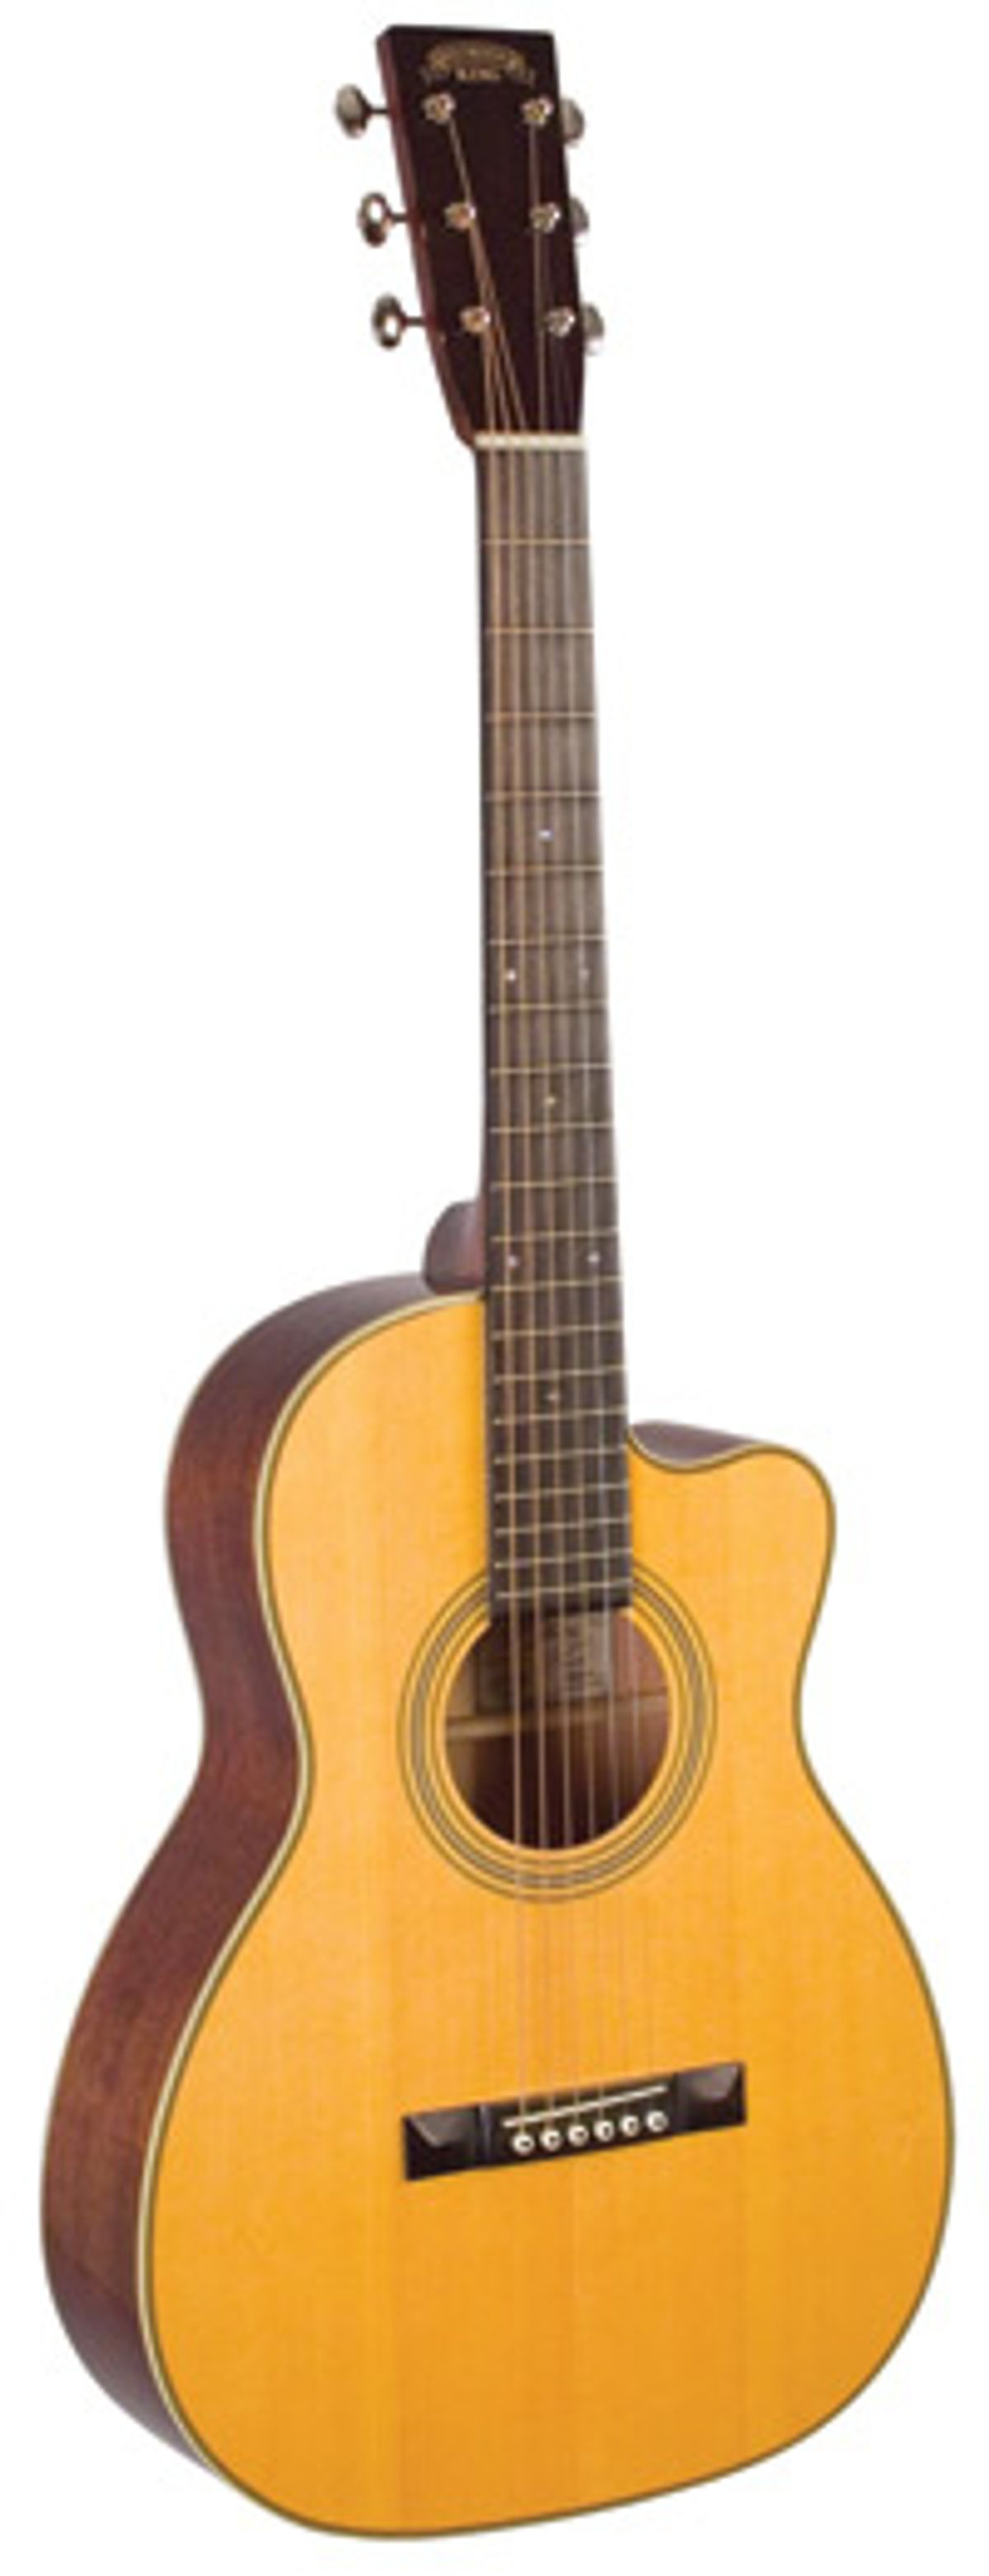 Recording King Announces Cutaway Parlor Guitars in Collaboration with Eric Schoenberg